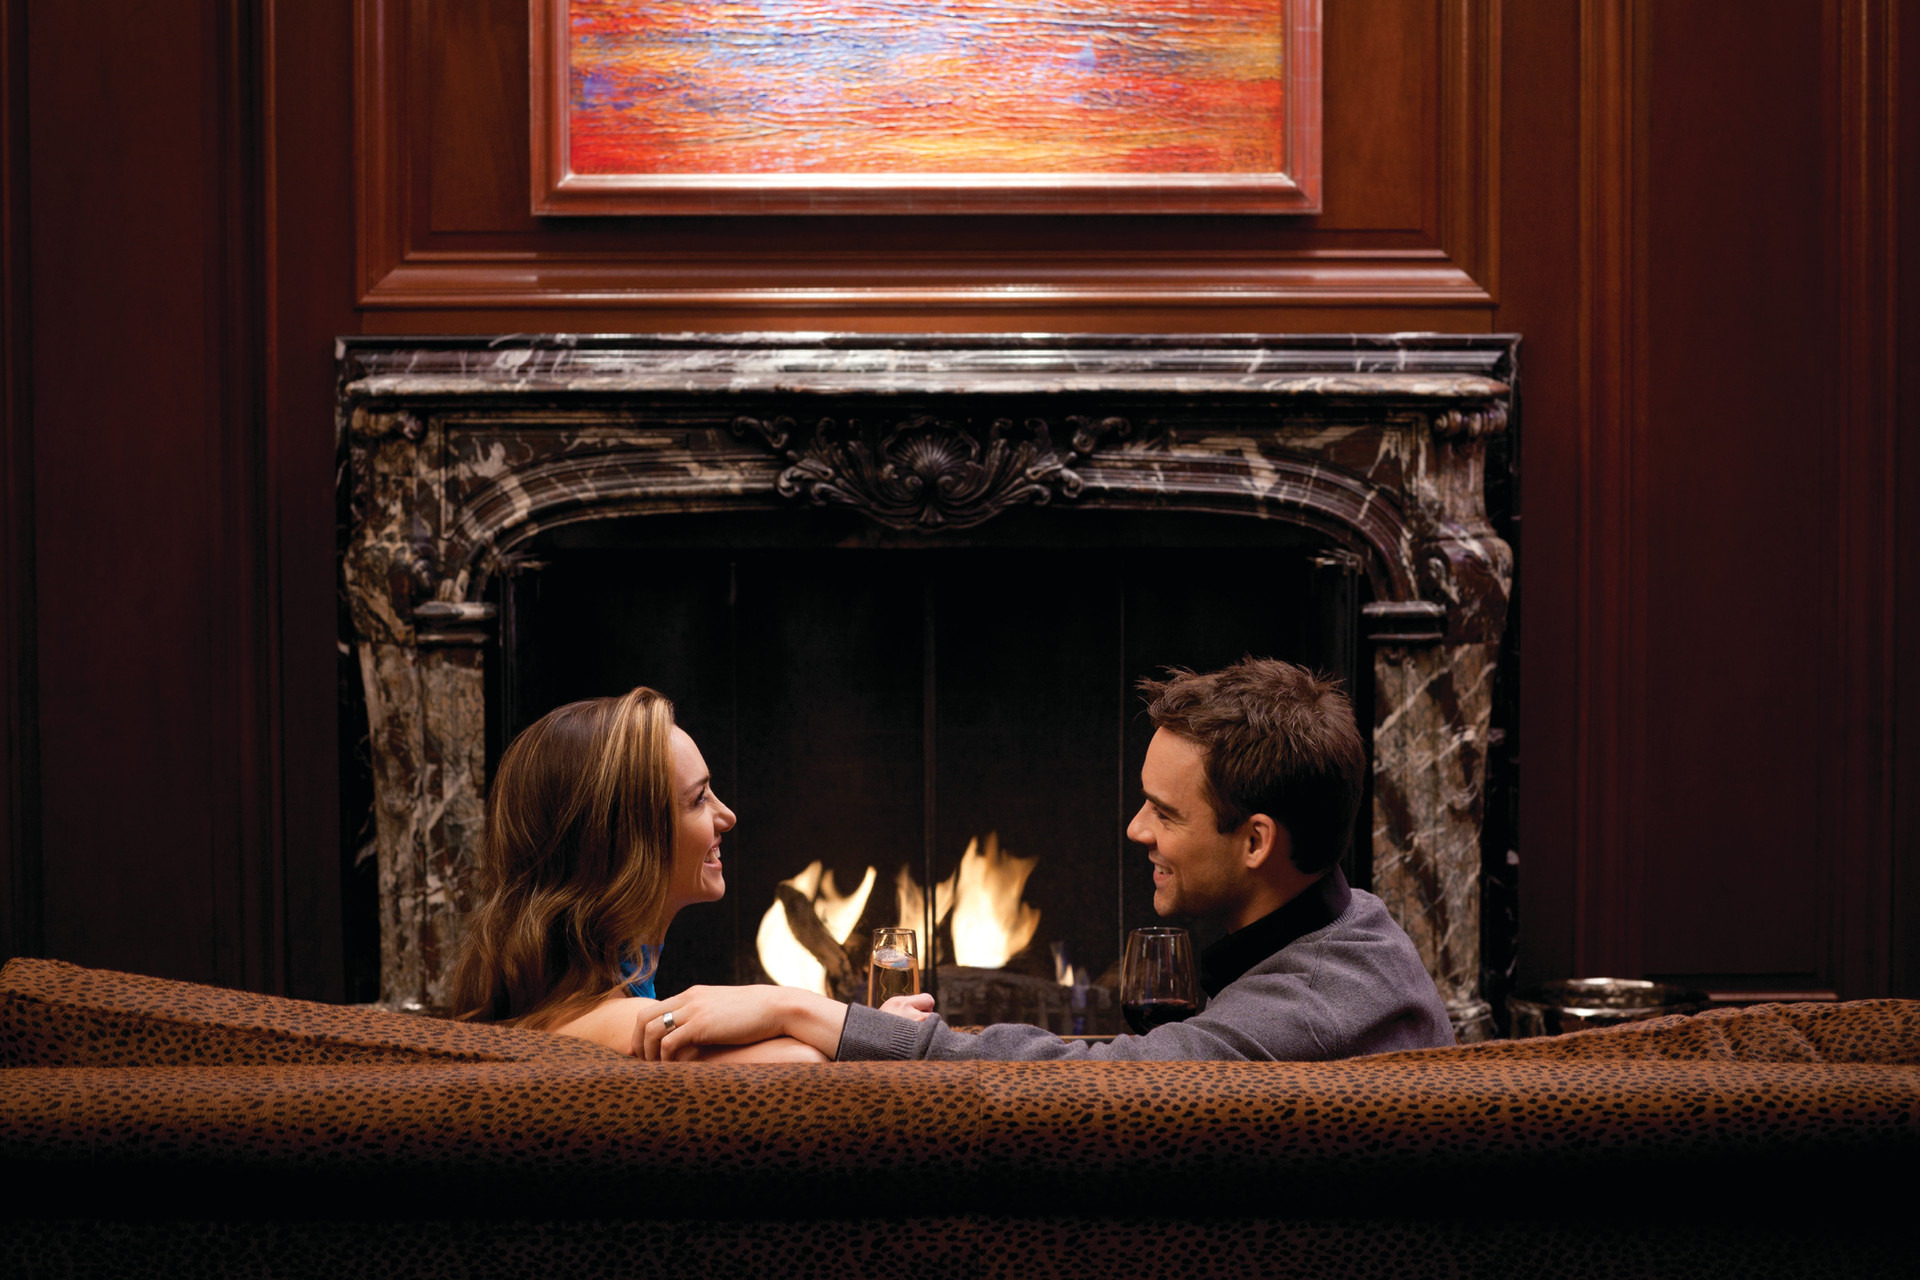 Restaurants and bars with fireplaces